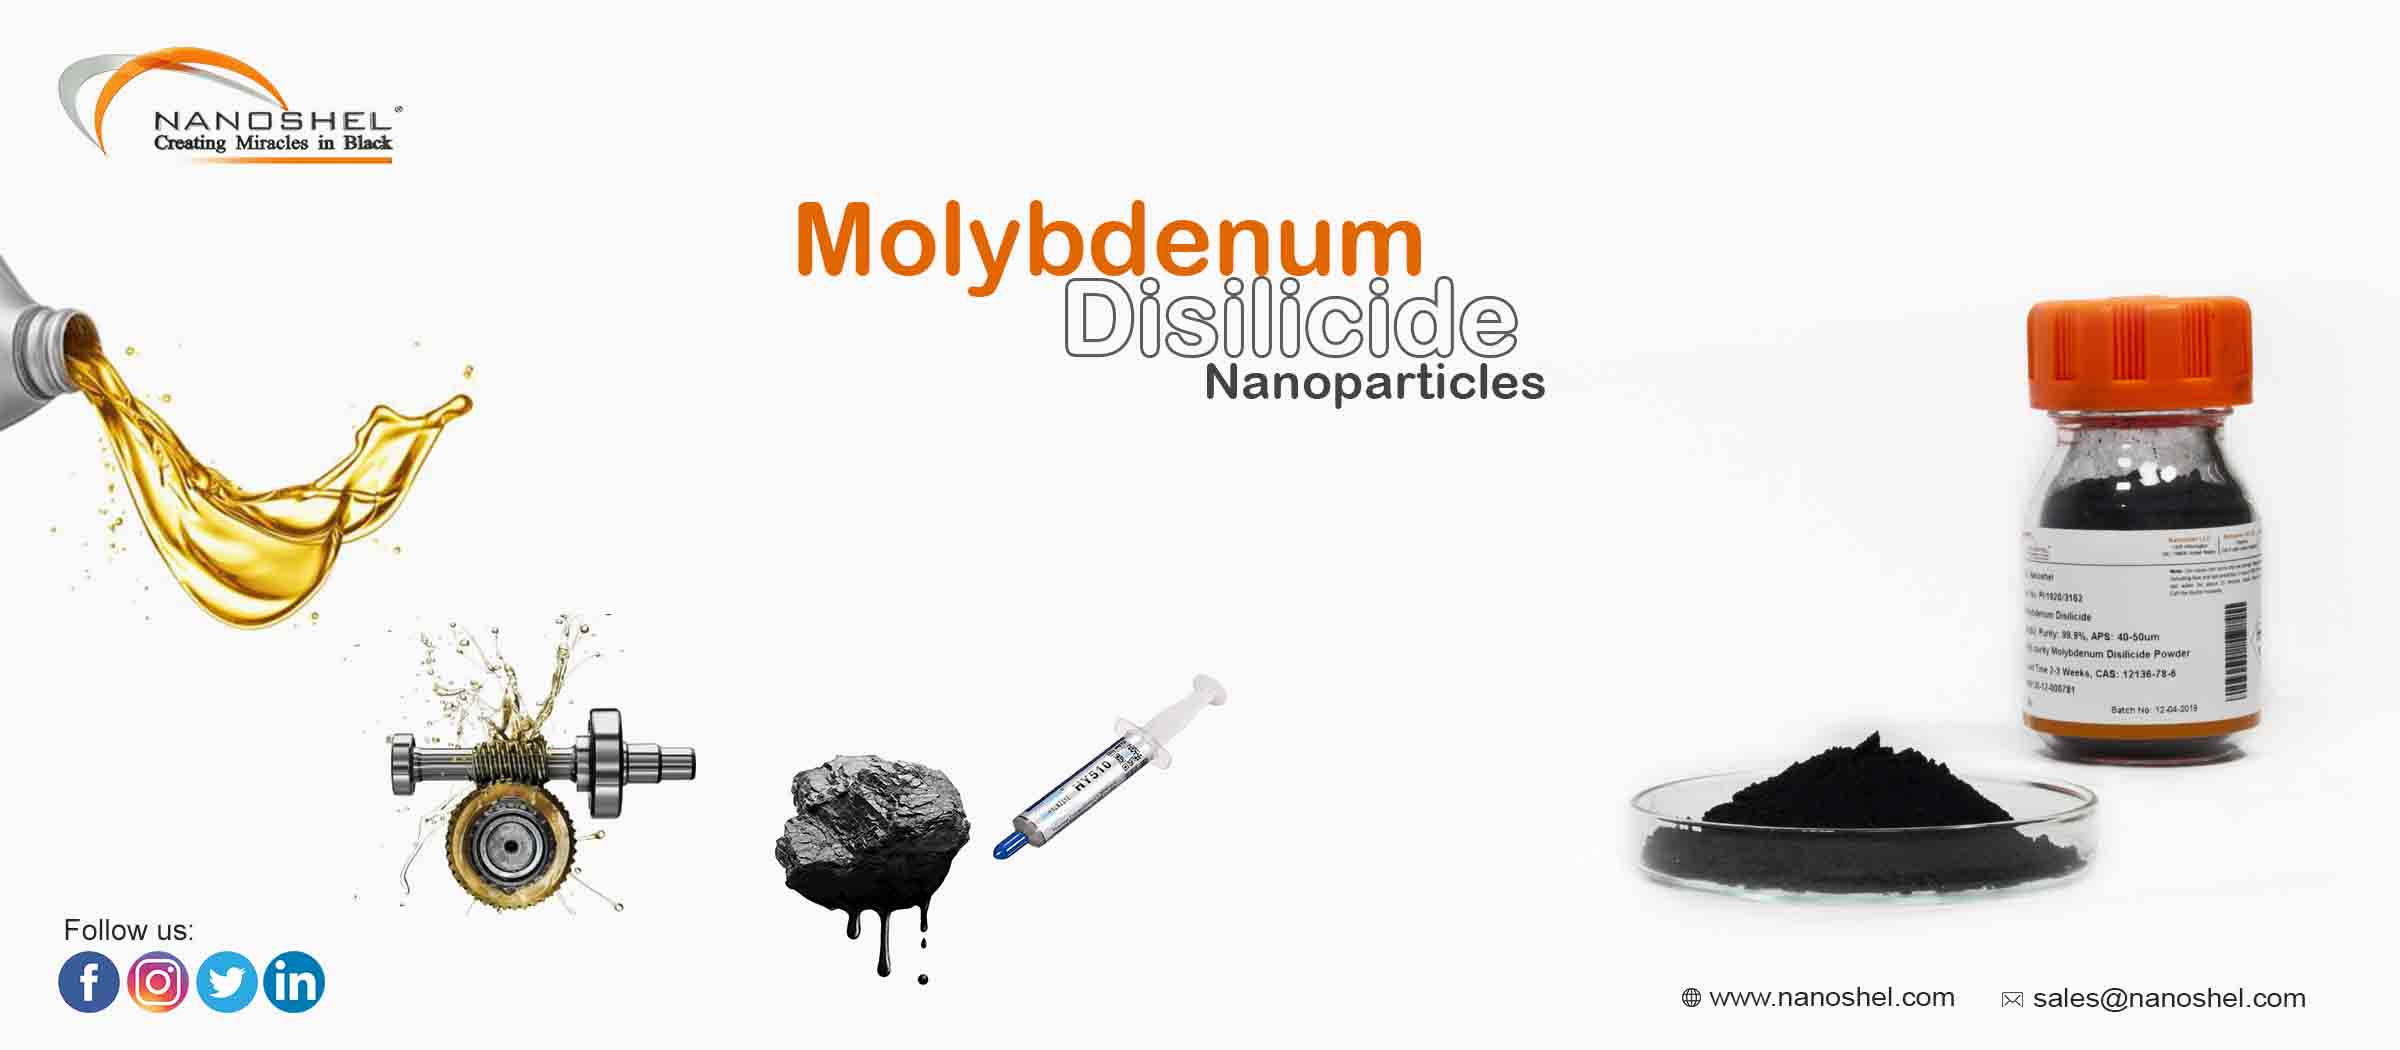 Molybdenum Disilicide Nanoparticles